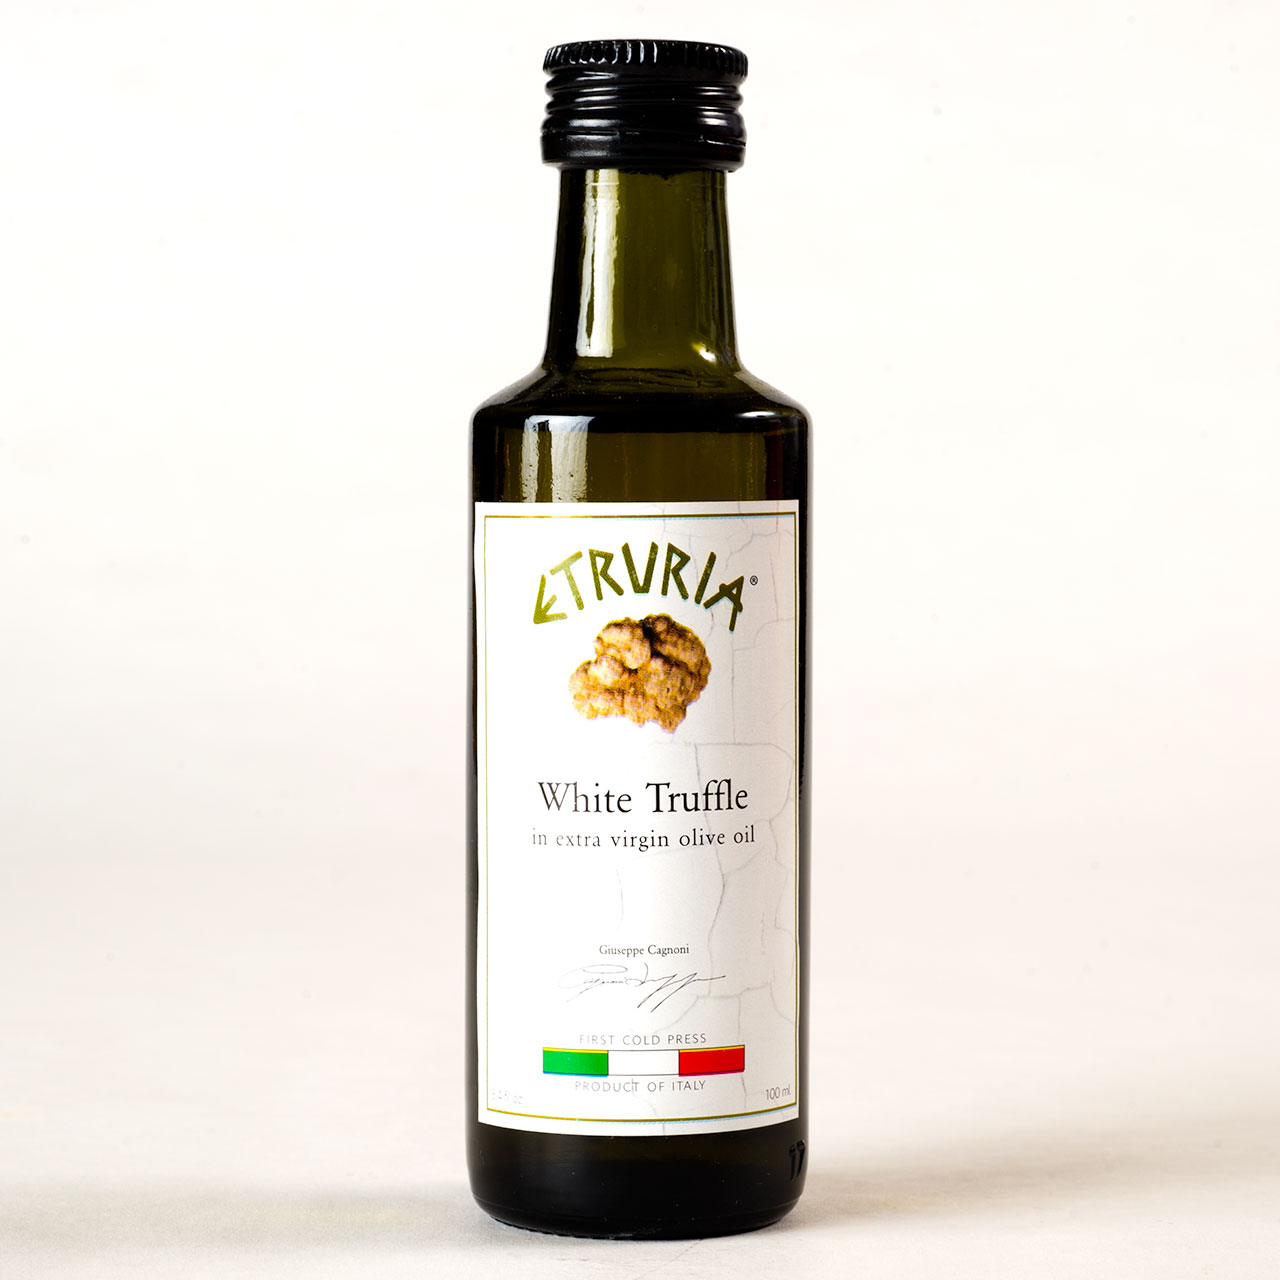 Etruria White Truffle Oil